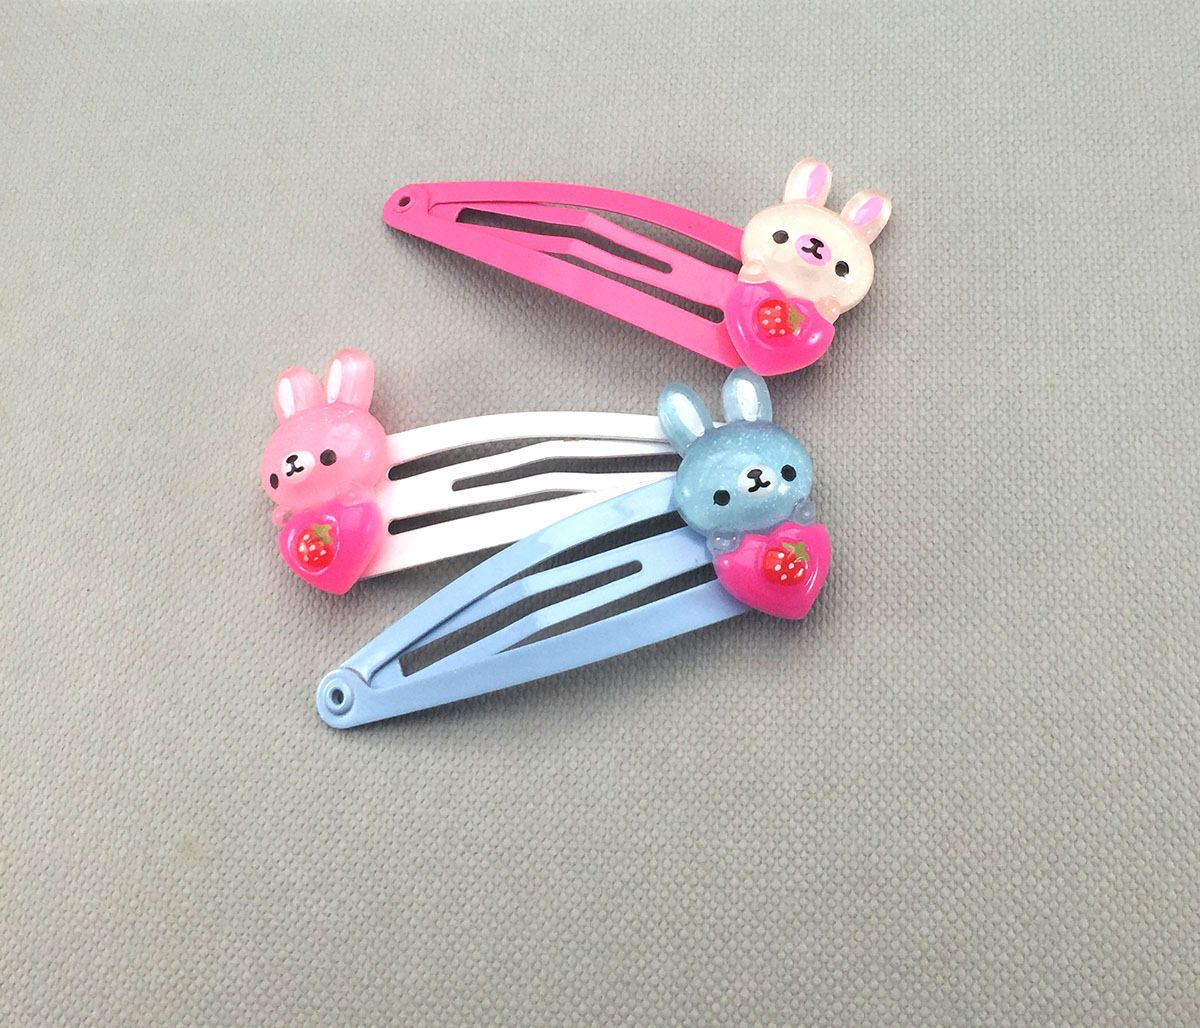 Hair Clips For Girls Bunny Hair Clips Toddler Girl Hair Clip Girls Hair Clips Hair Clip Kawaii Hair Clips Kawaii Hair Clips Kawaii Hairstyles Hair Clips